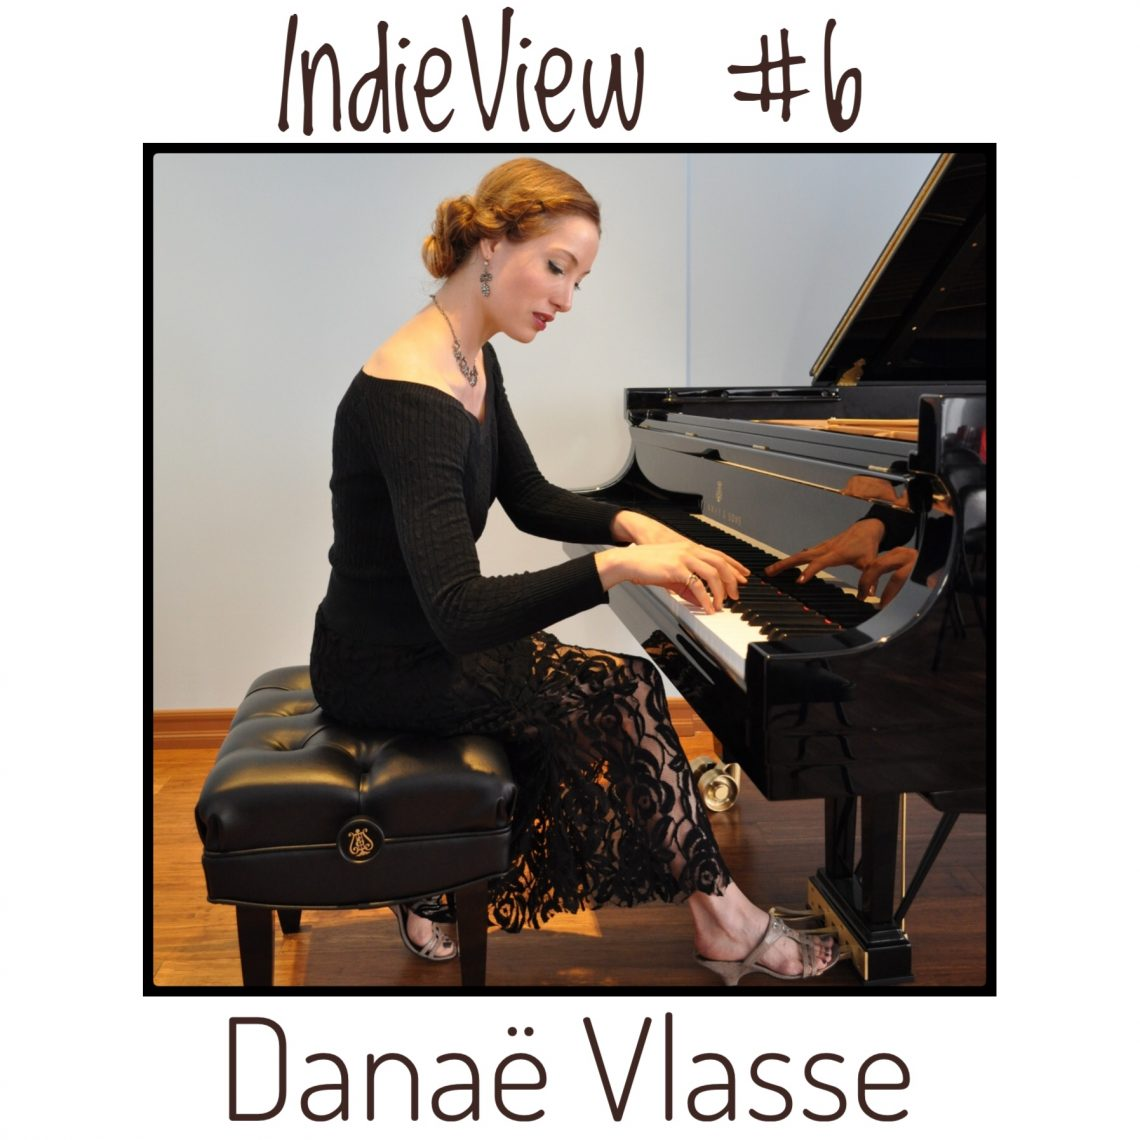 danae-Vlasse-Indieviews-pianist-composer